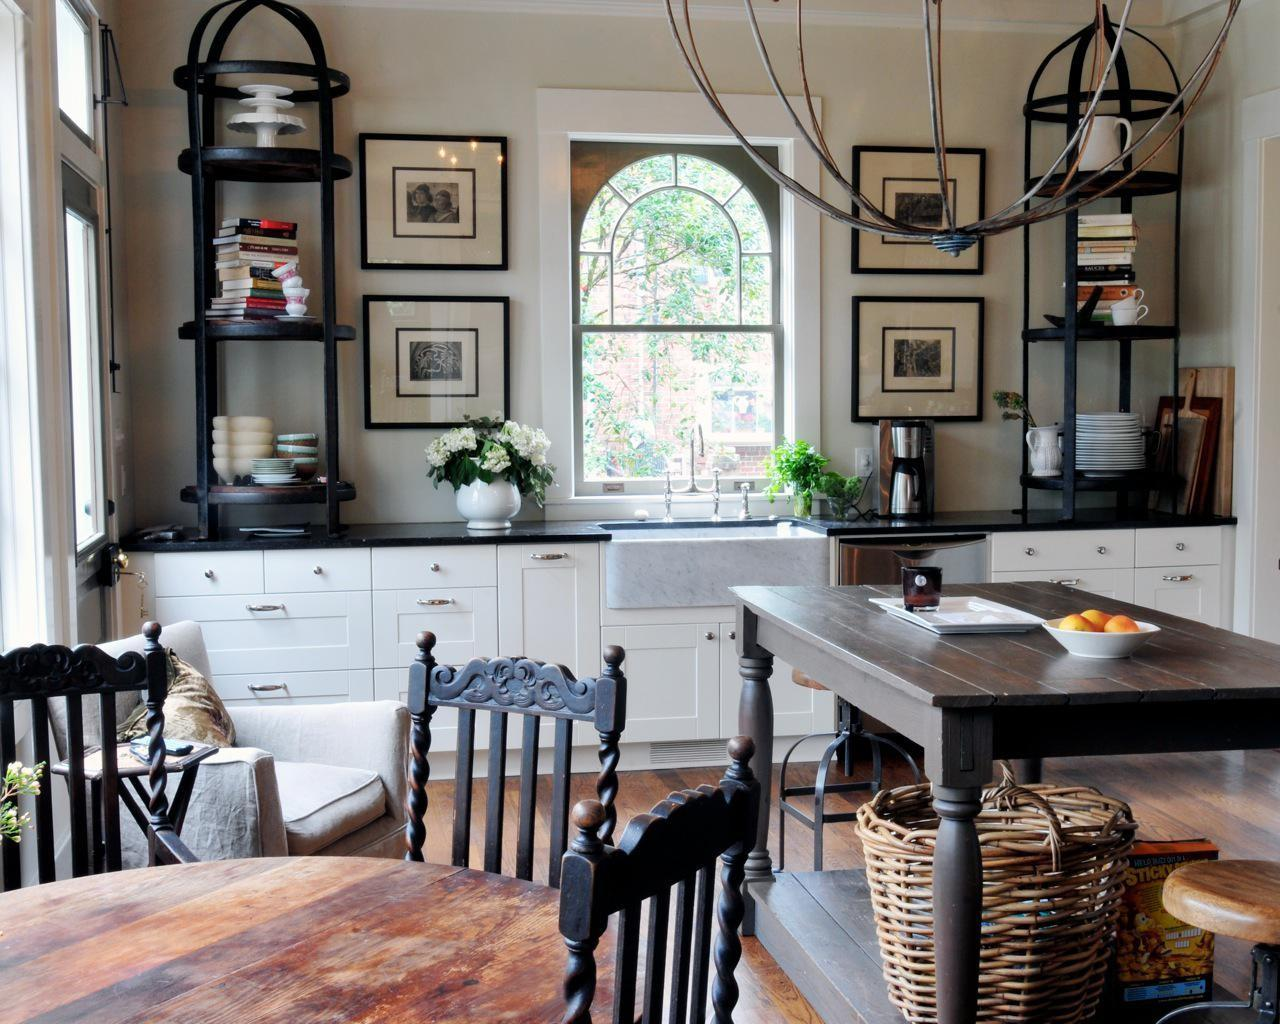 Awesome Rustic Shabby Chic Kitchen Decor Smith Design